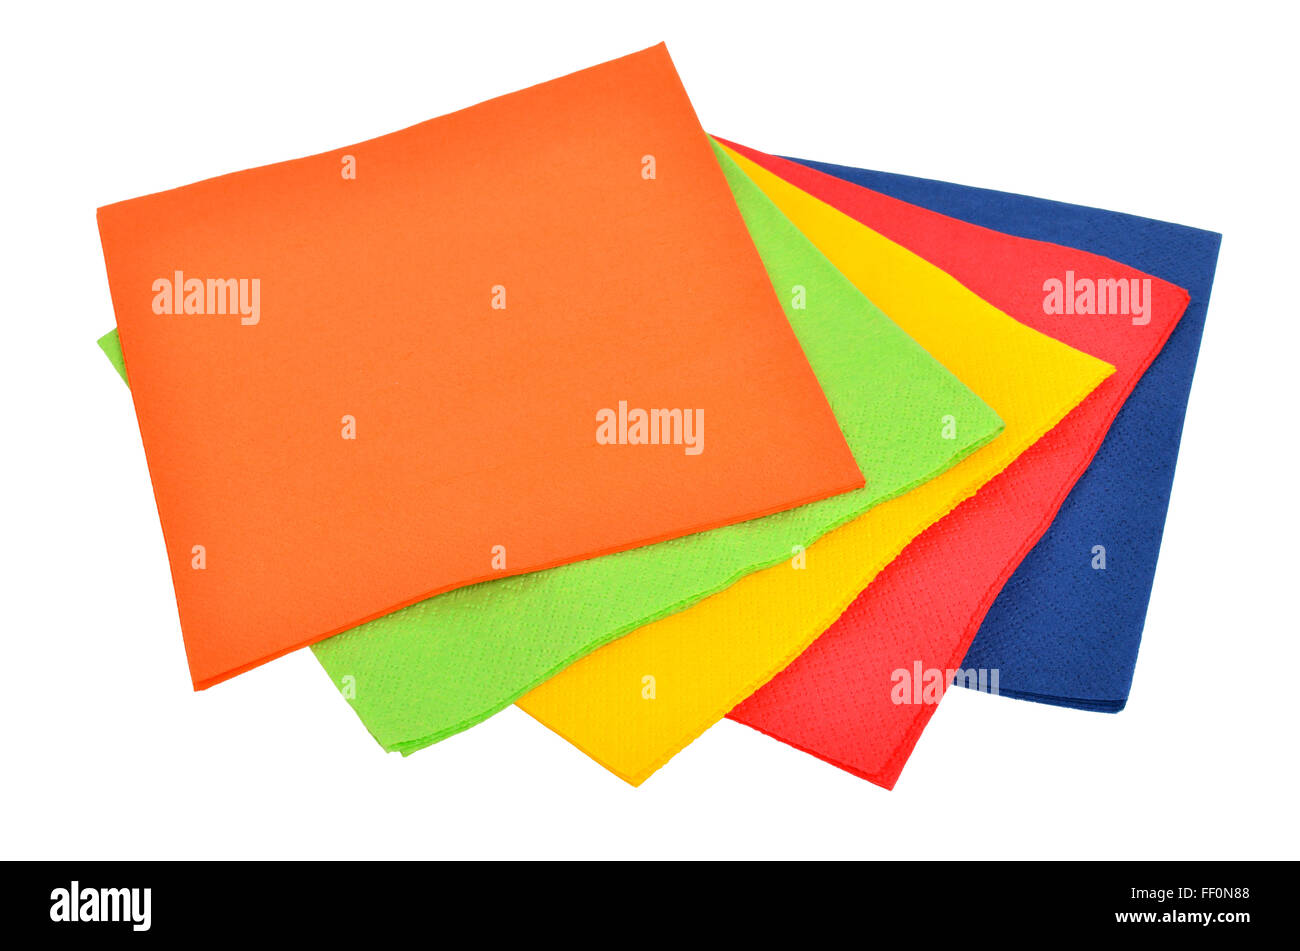 Multi-colored paper napkins for laying isolated on a white background. - Stock Image